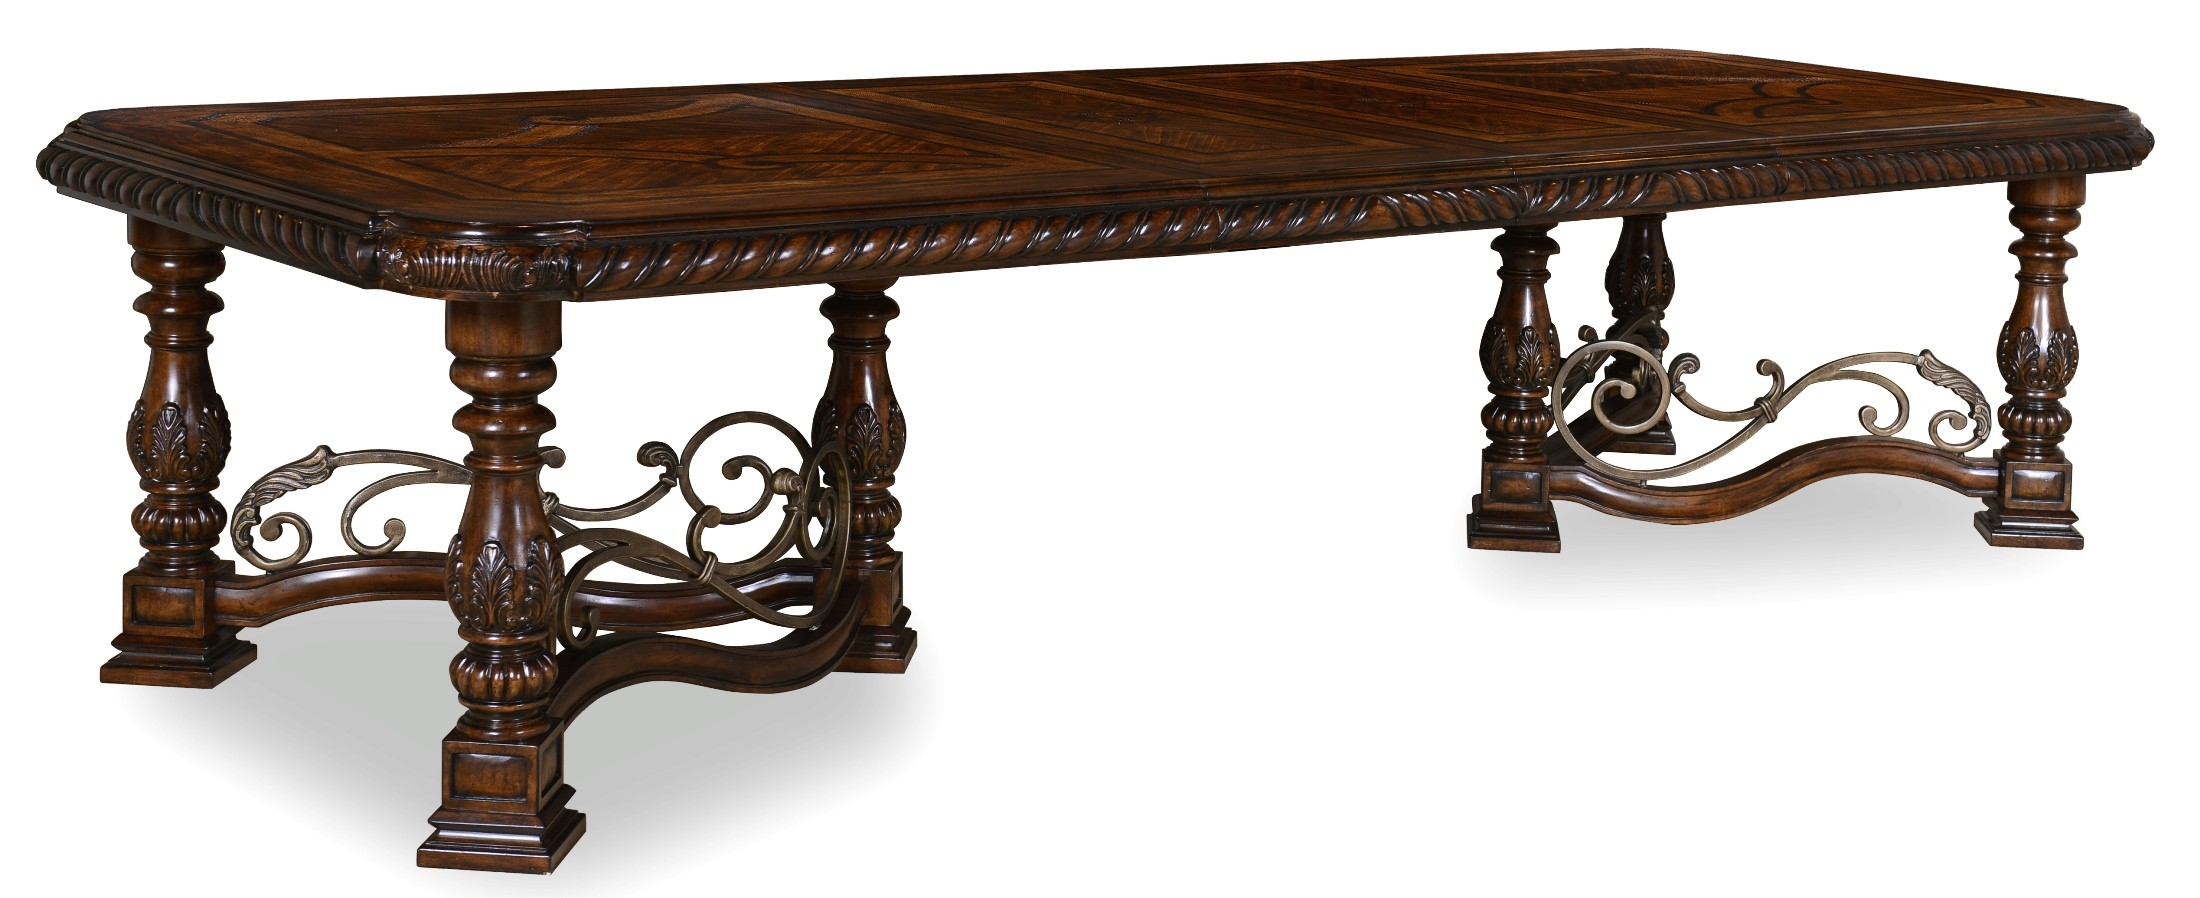 valencia trestle extendable dining table from art 209221 2304 coleman furniture. Black Bedroom Furniture Sets. Home Design Ideas